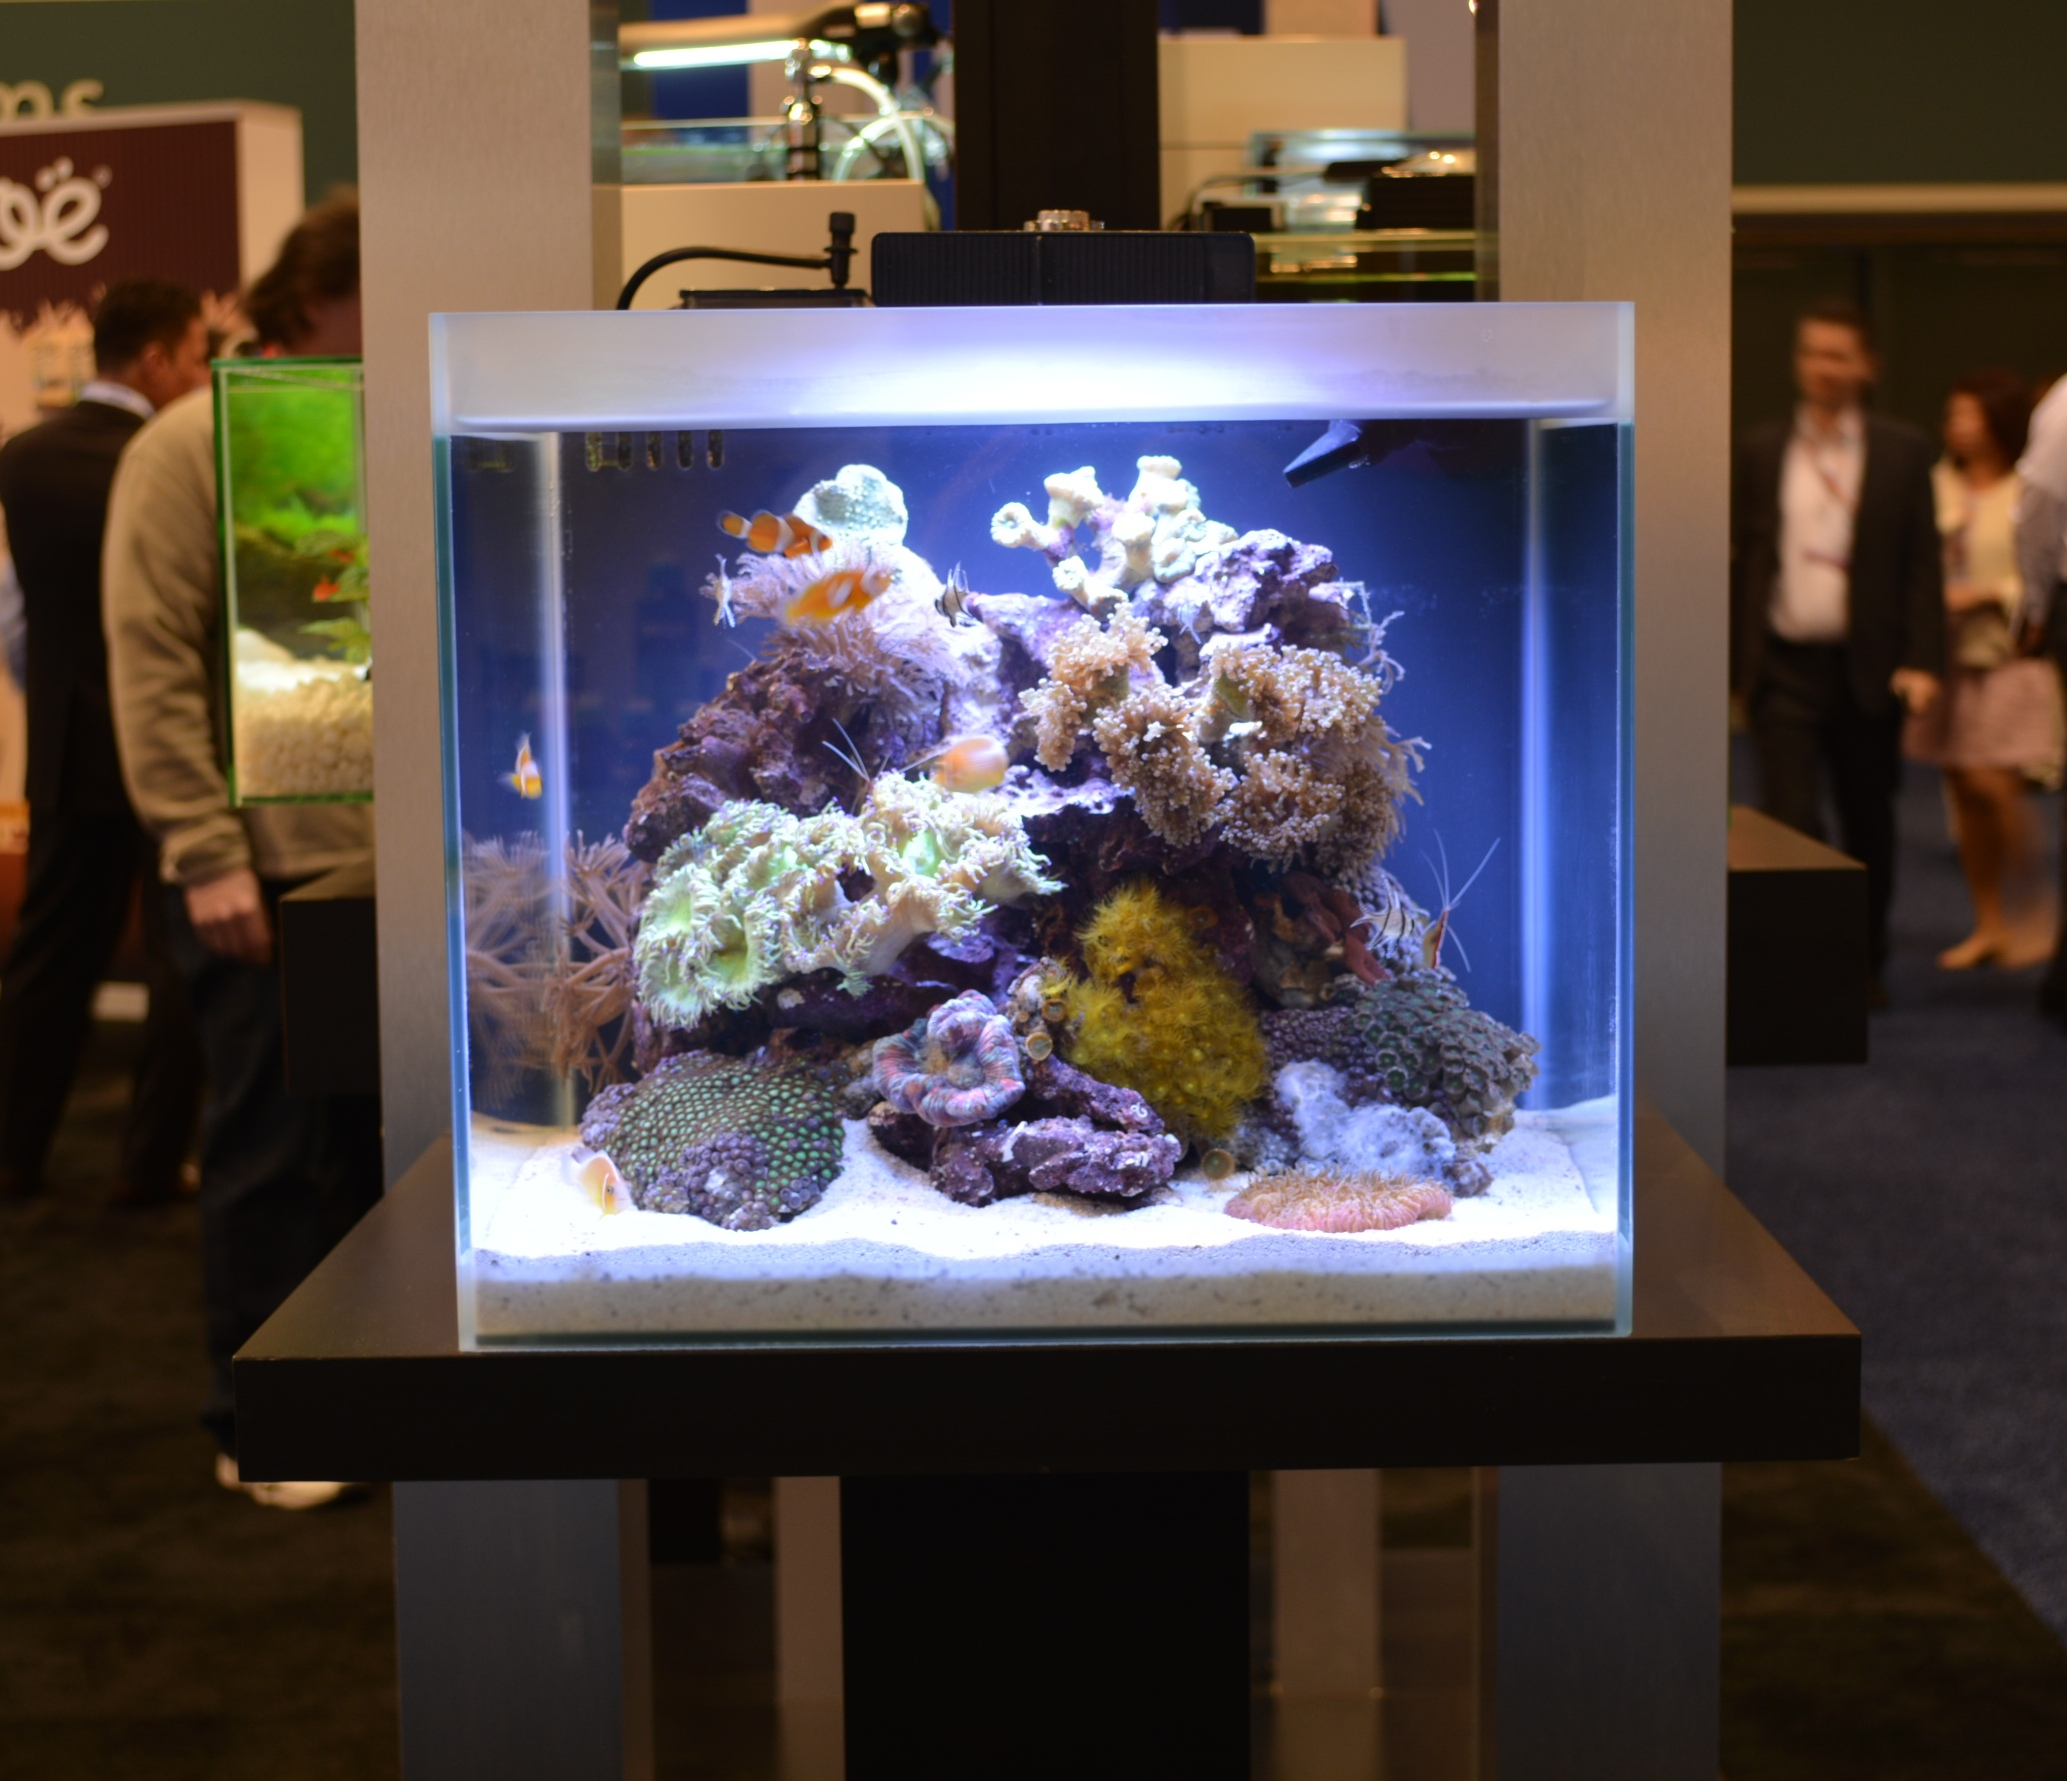 Fluval M-40 (15 gal) Desktop Reef Aquarium